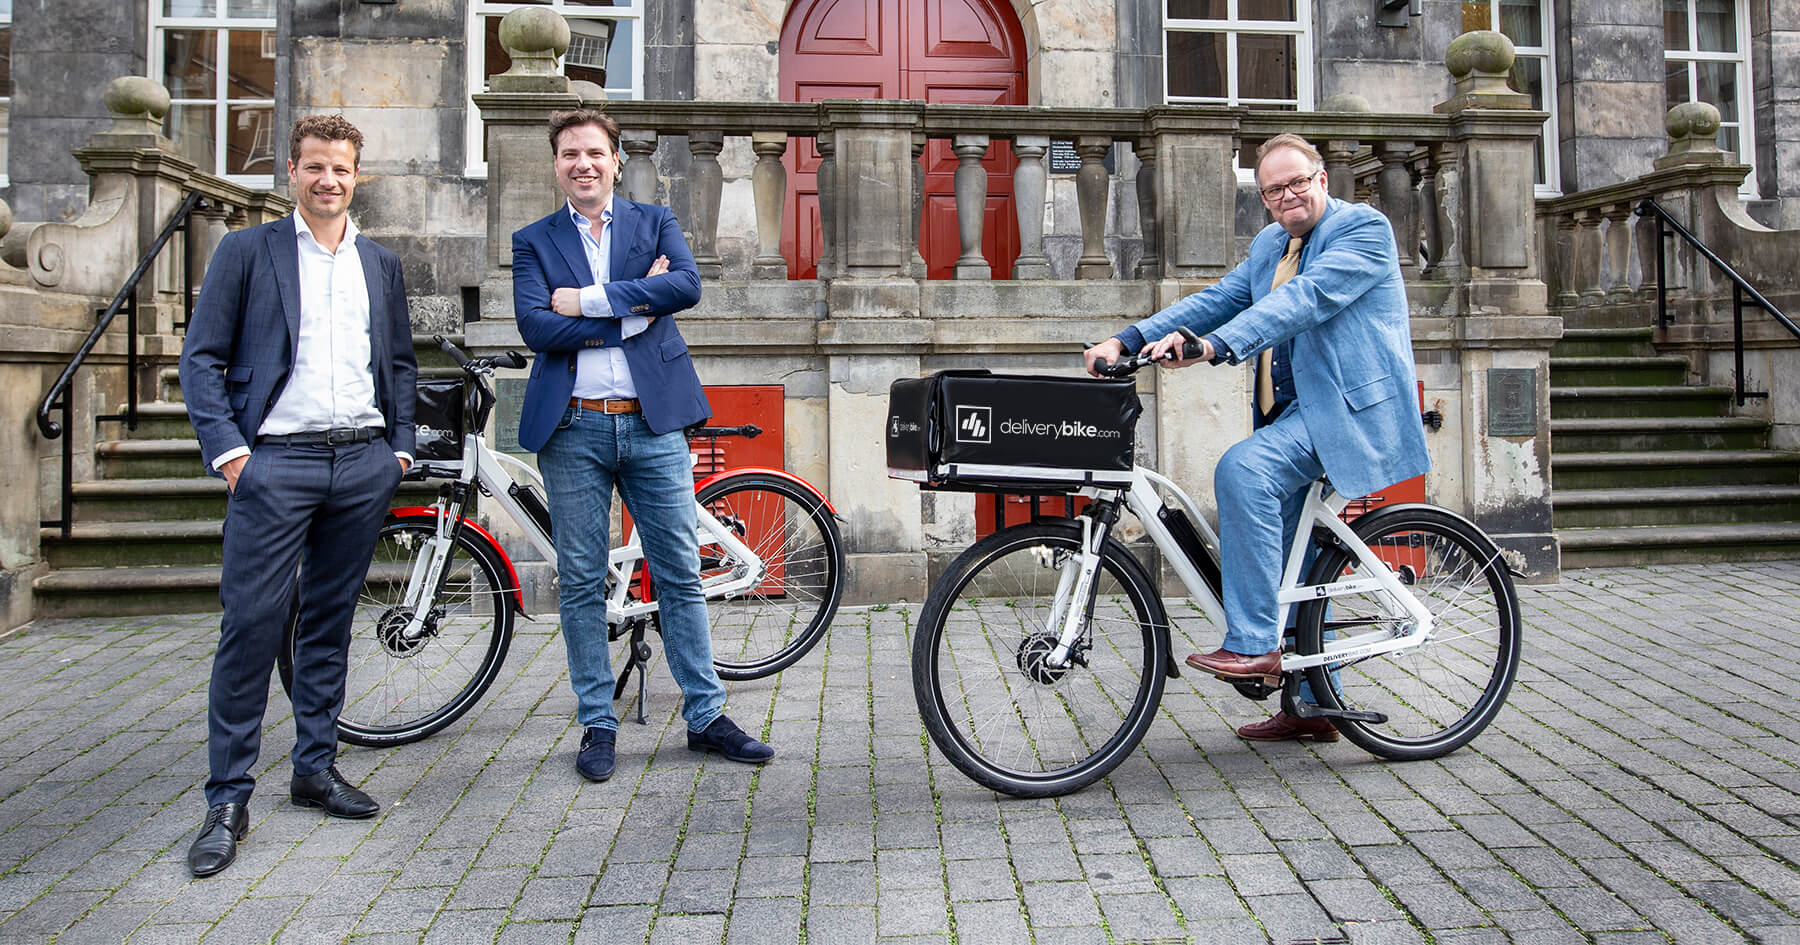 DeliveryBike raises series A funding